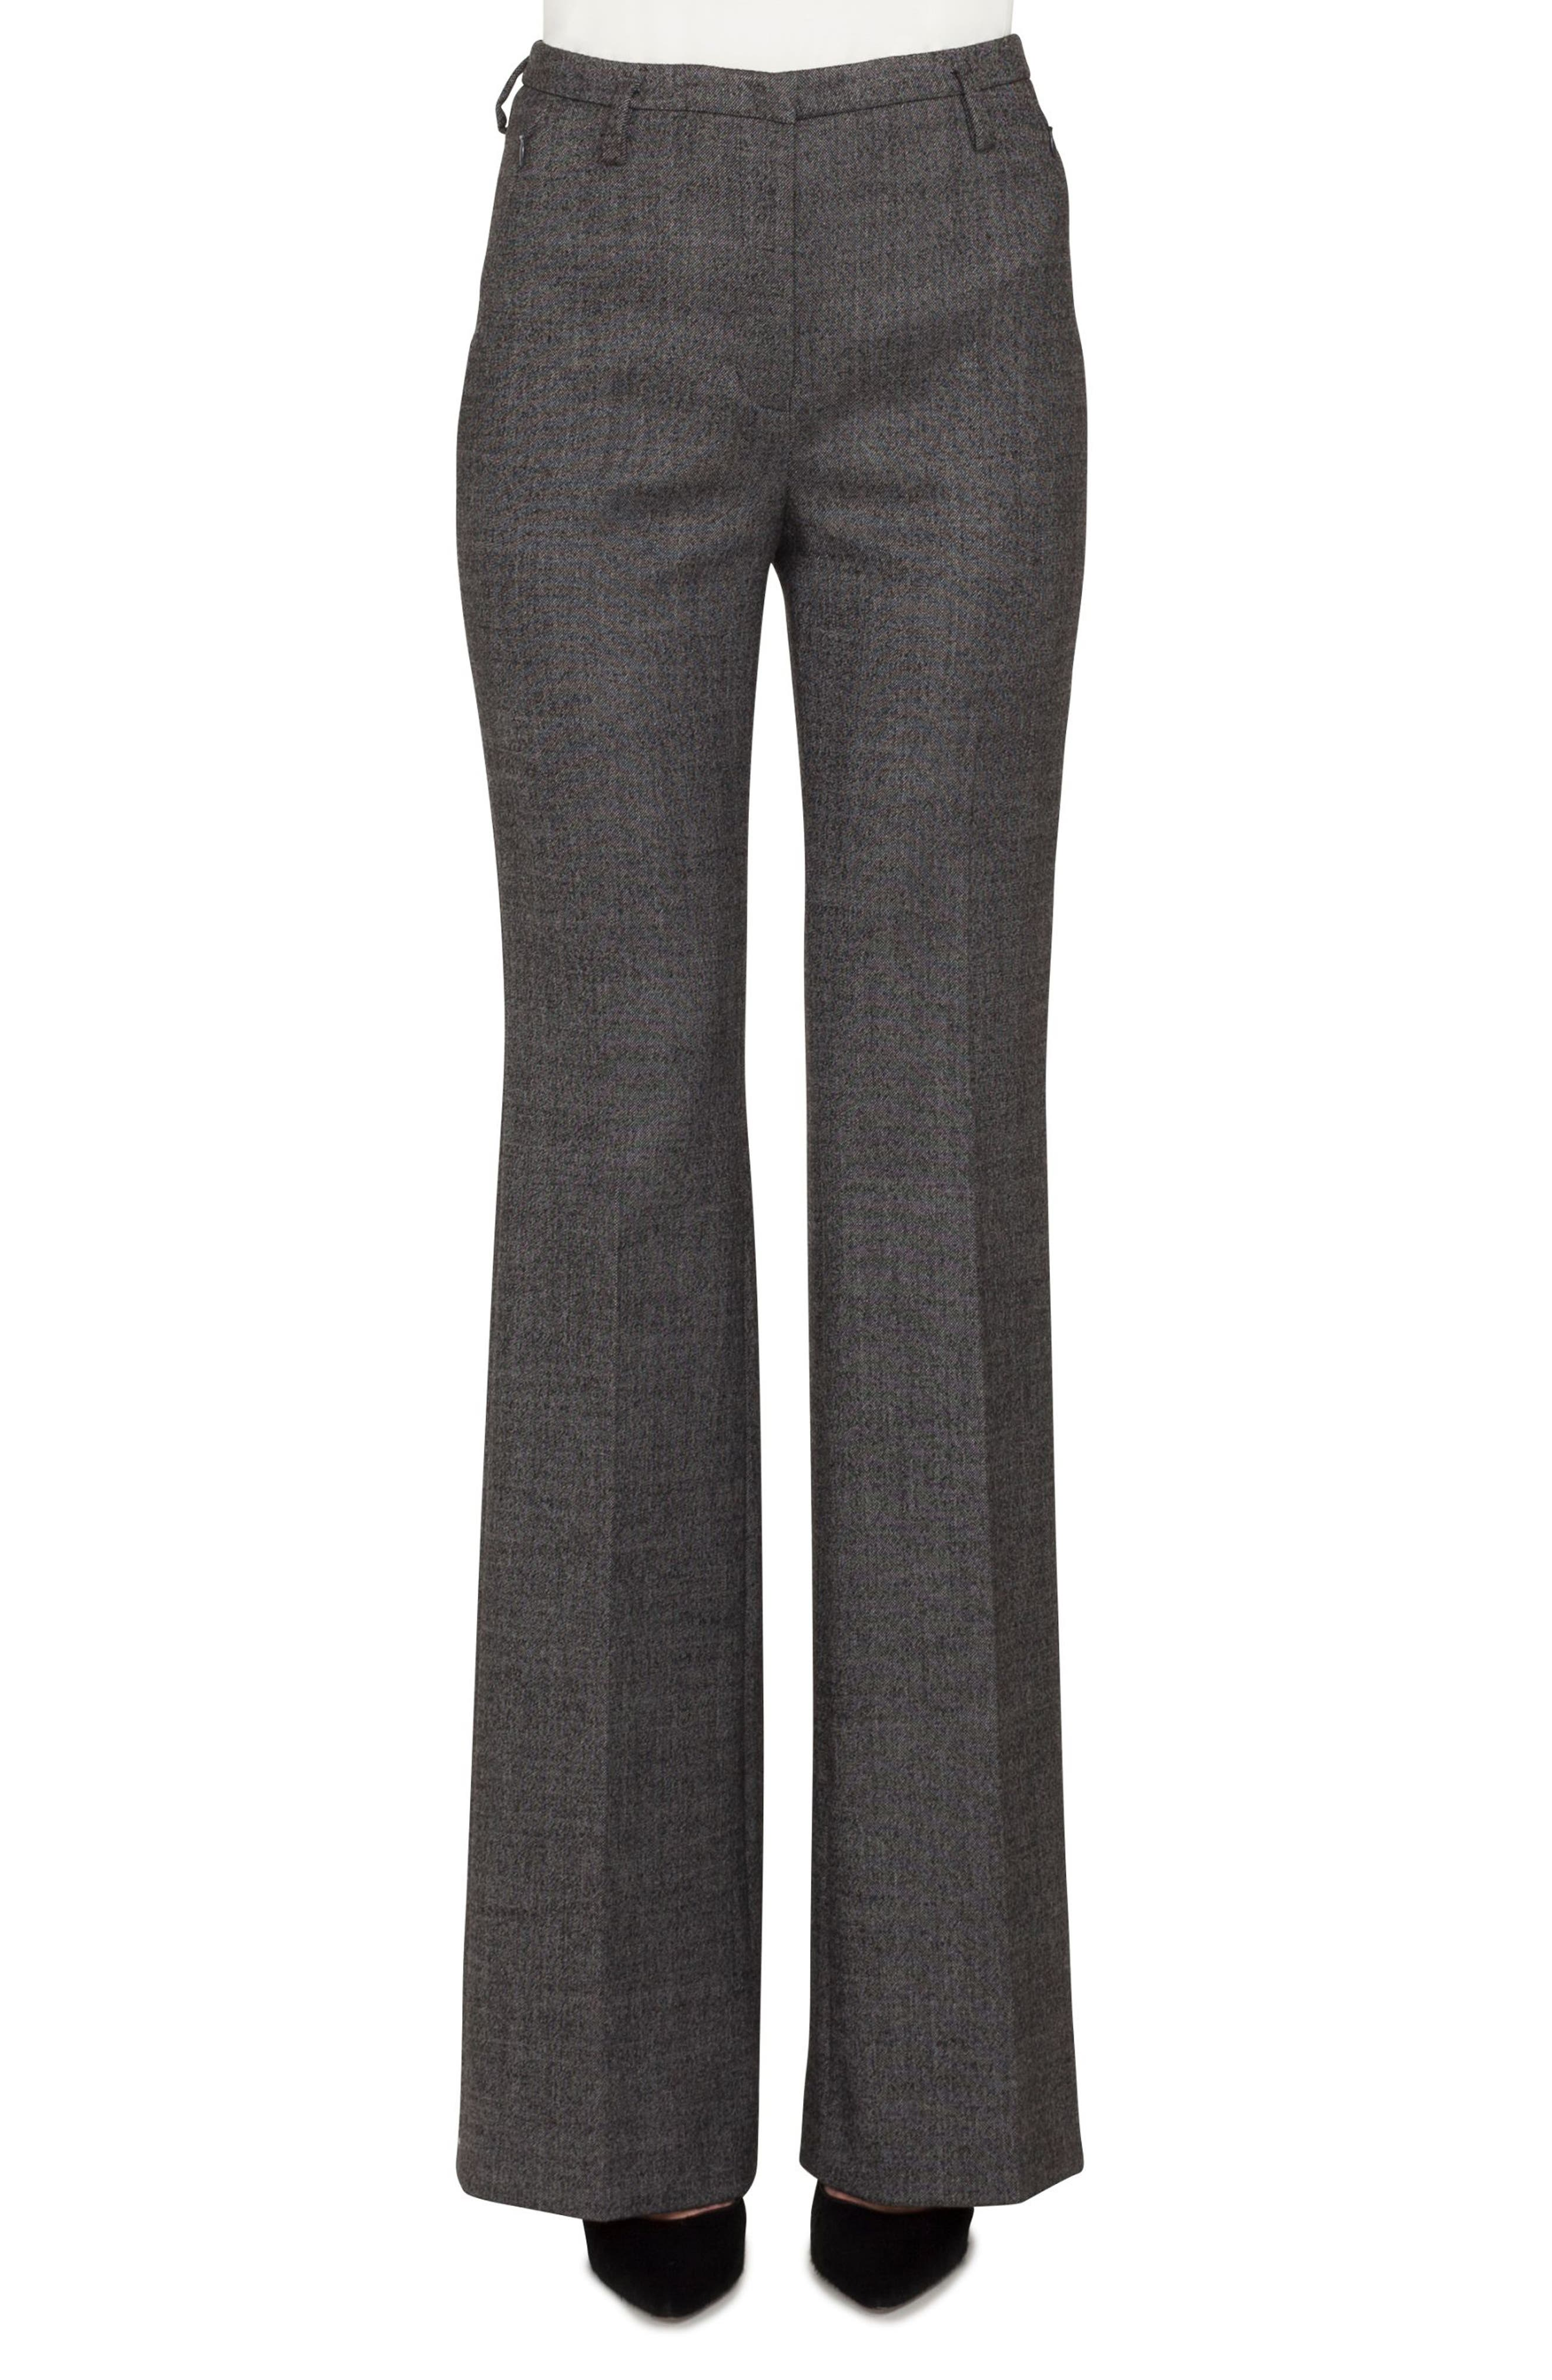 Akris Farrah Stretch Tweed Flare Pants